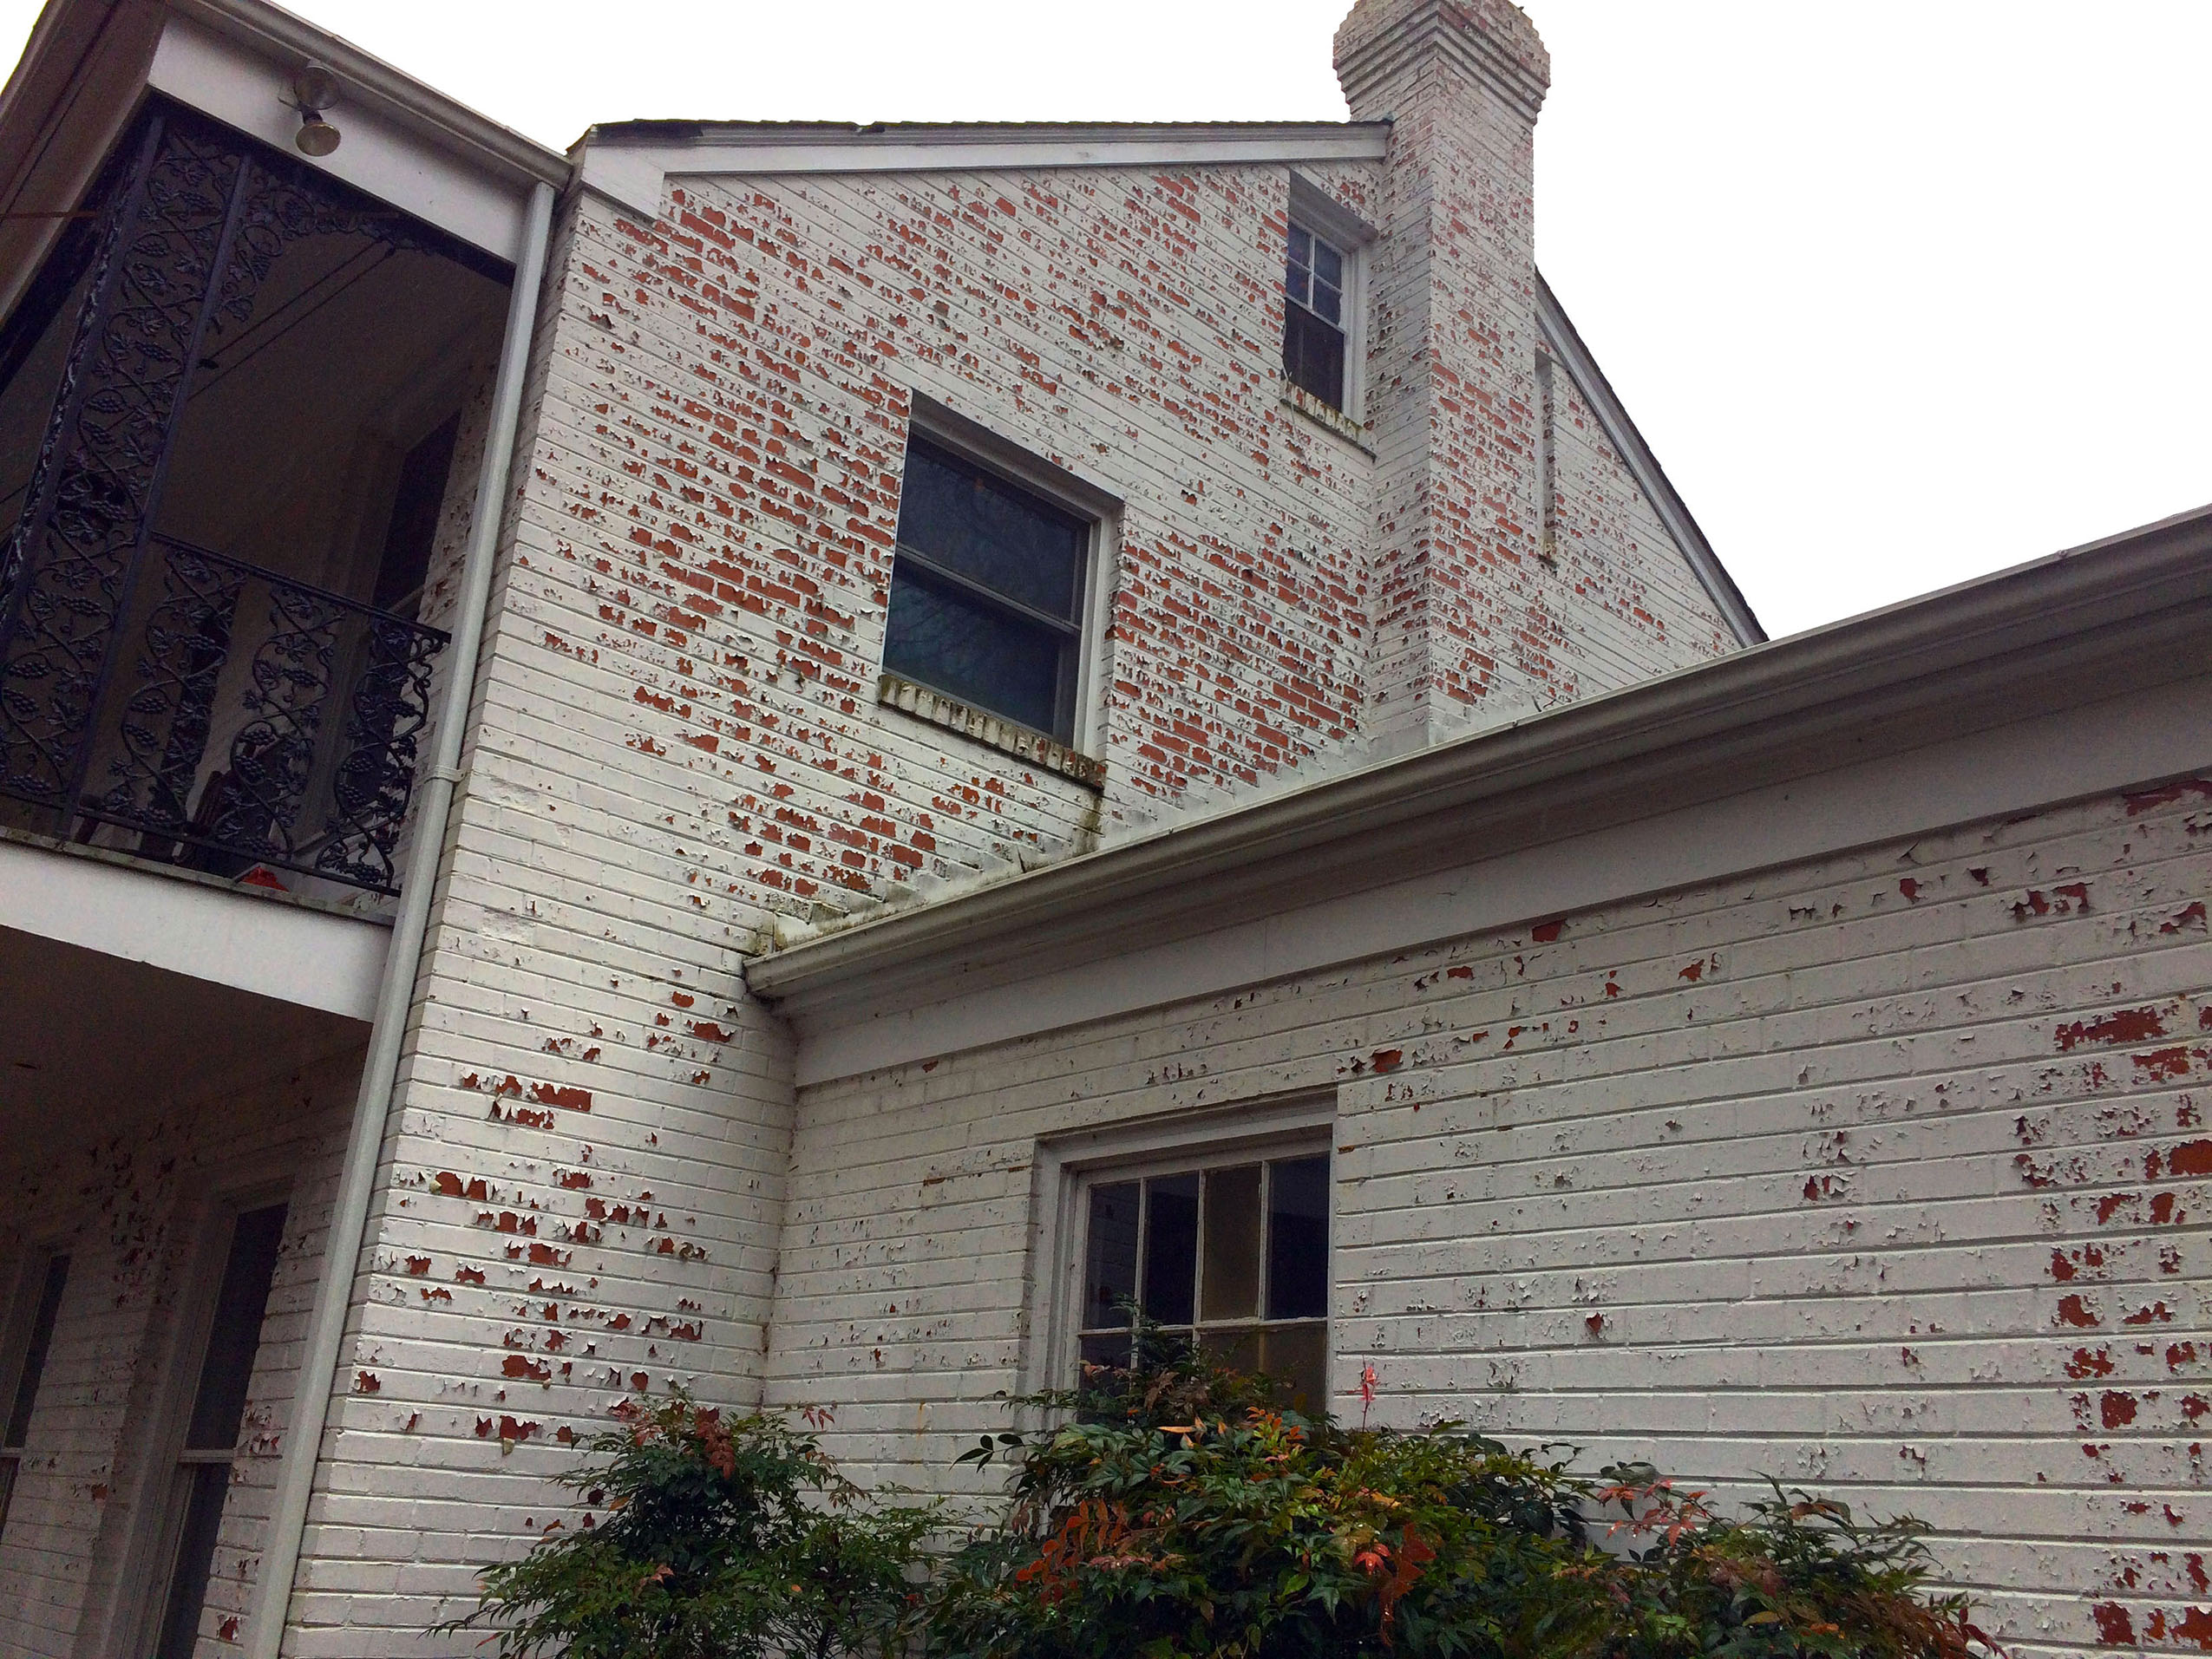 How To Avoid Having To Repaint Your Brick Home Ever Again The Washington Post